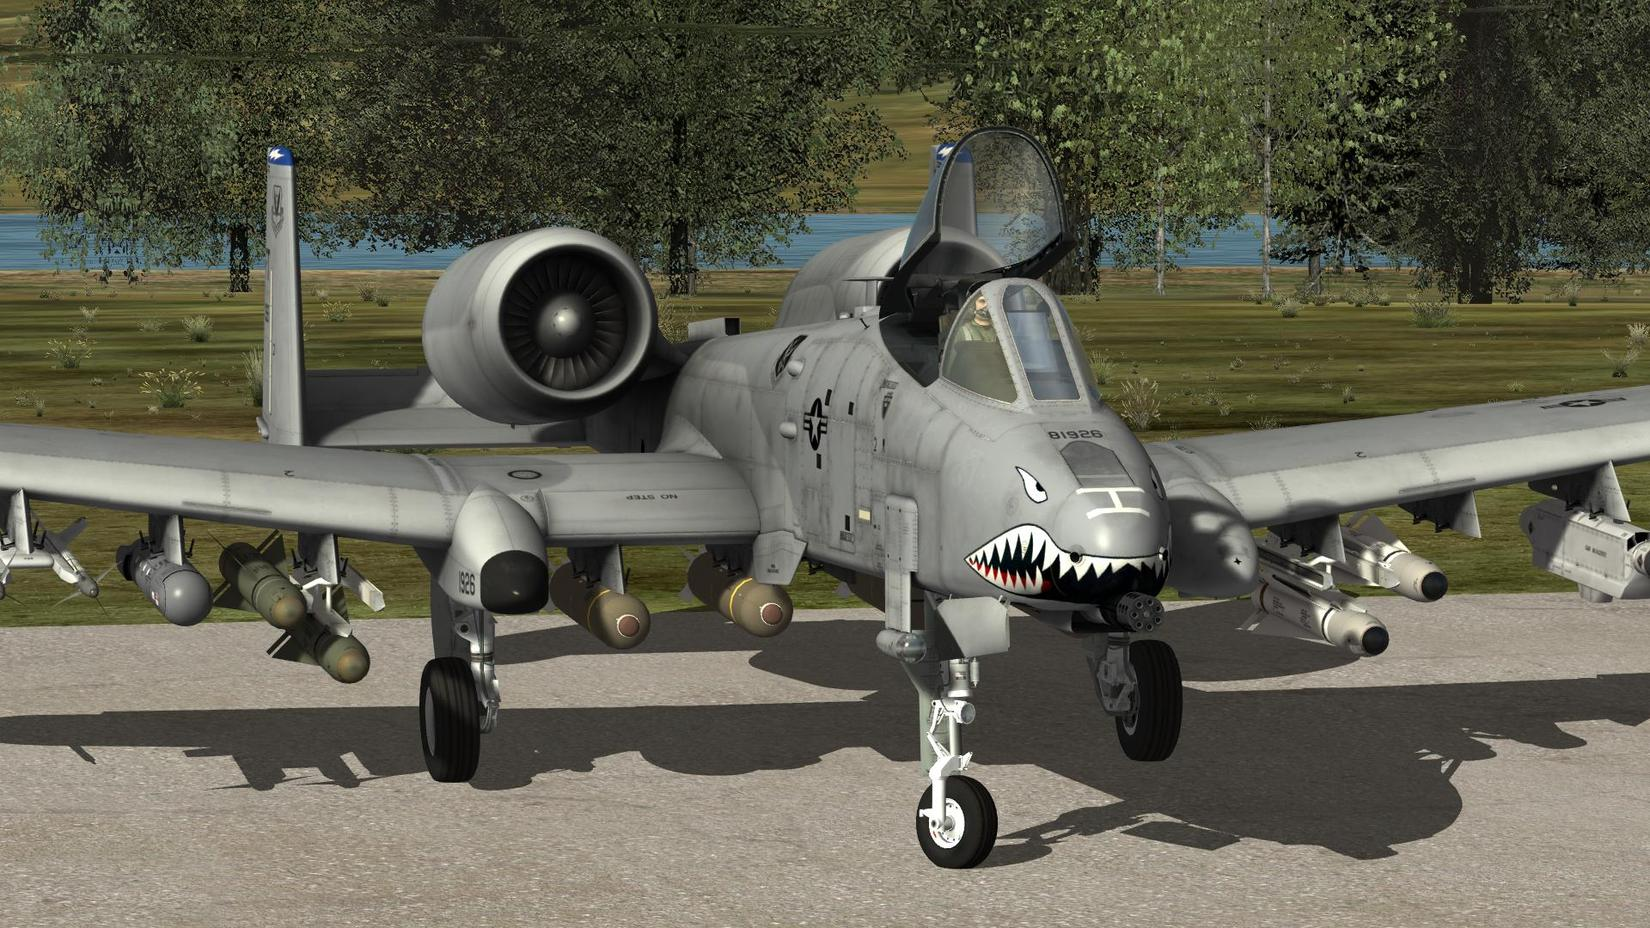 Some Ai aircraft from DCS A10 - SimHQ Forums